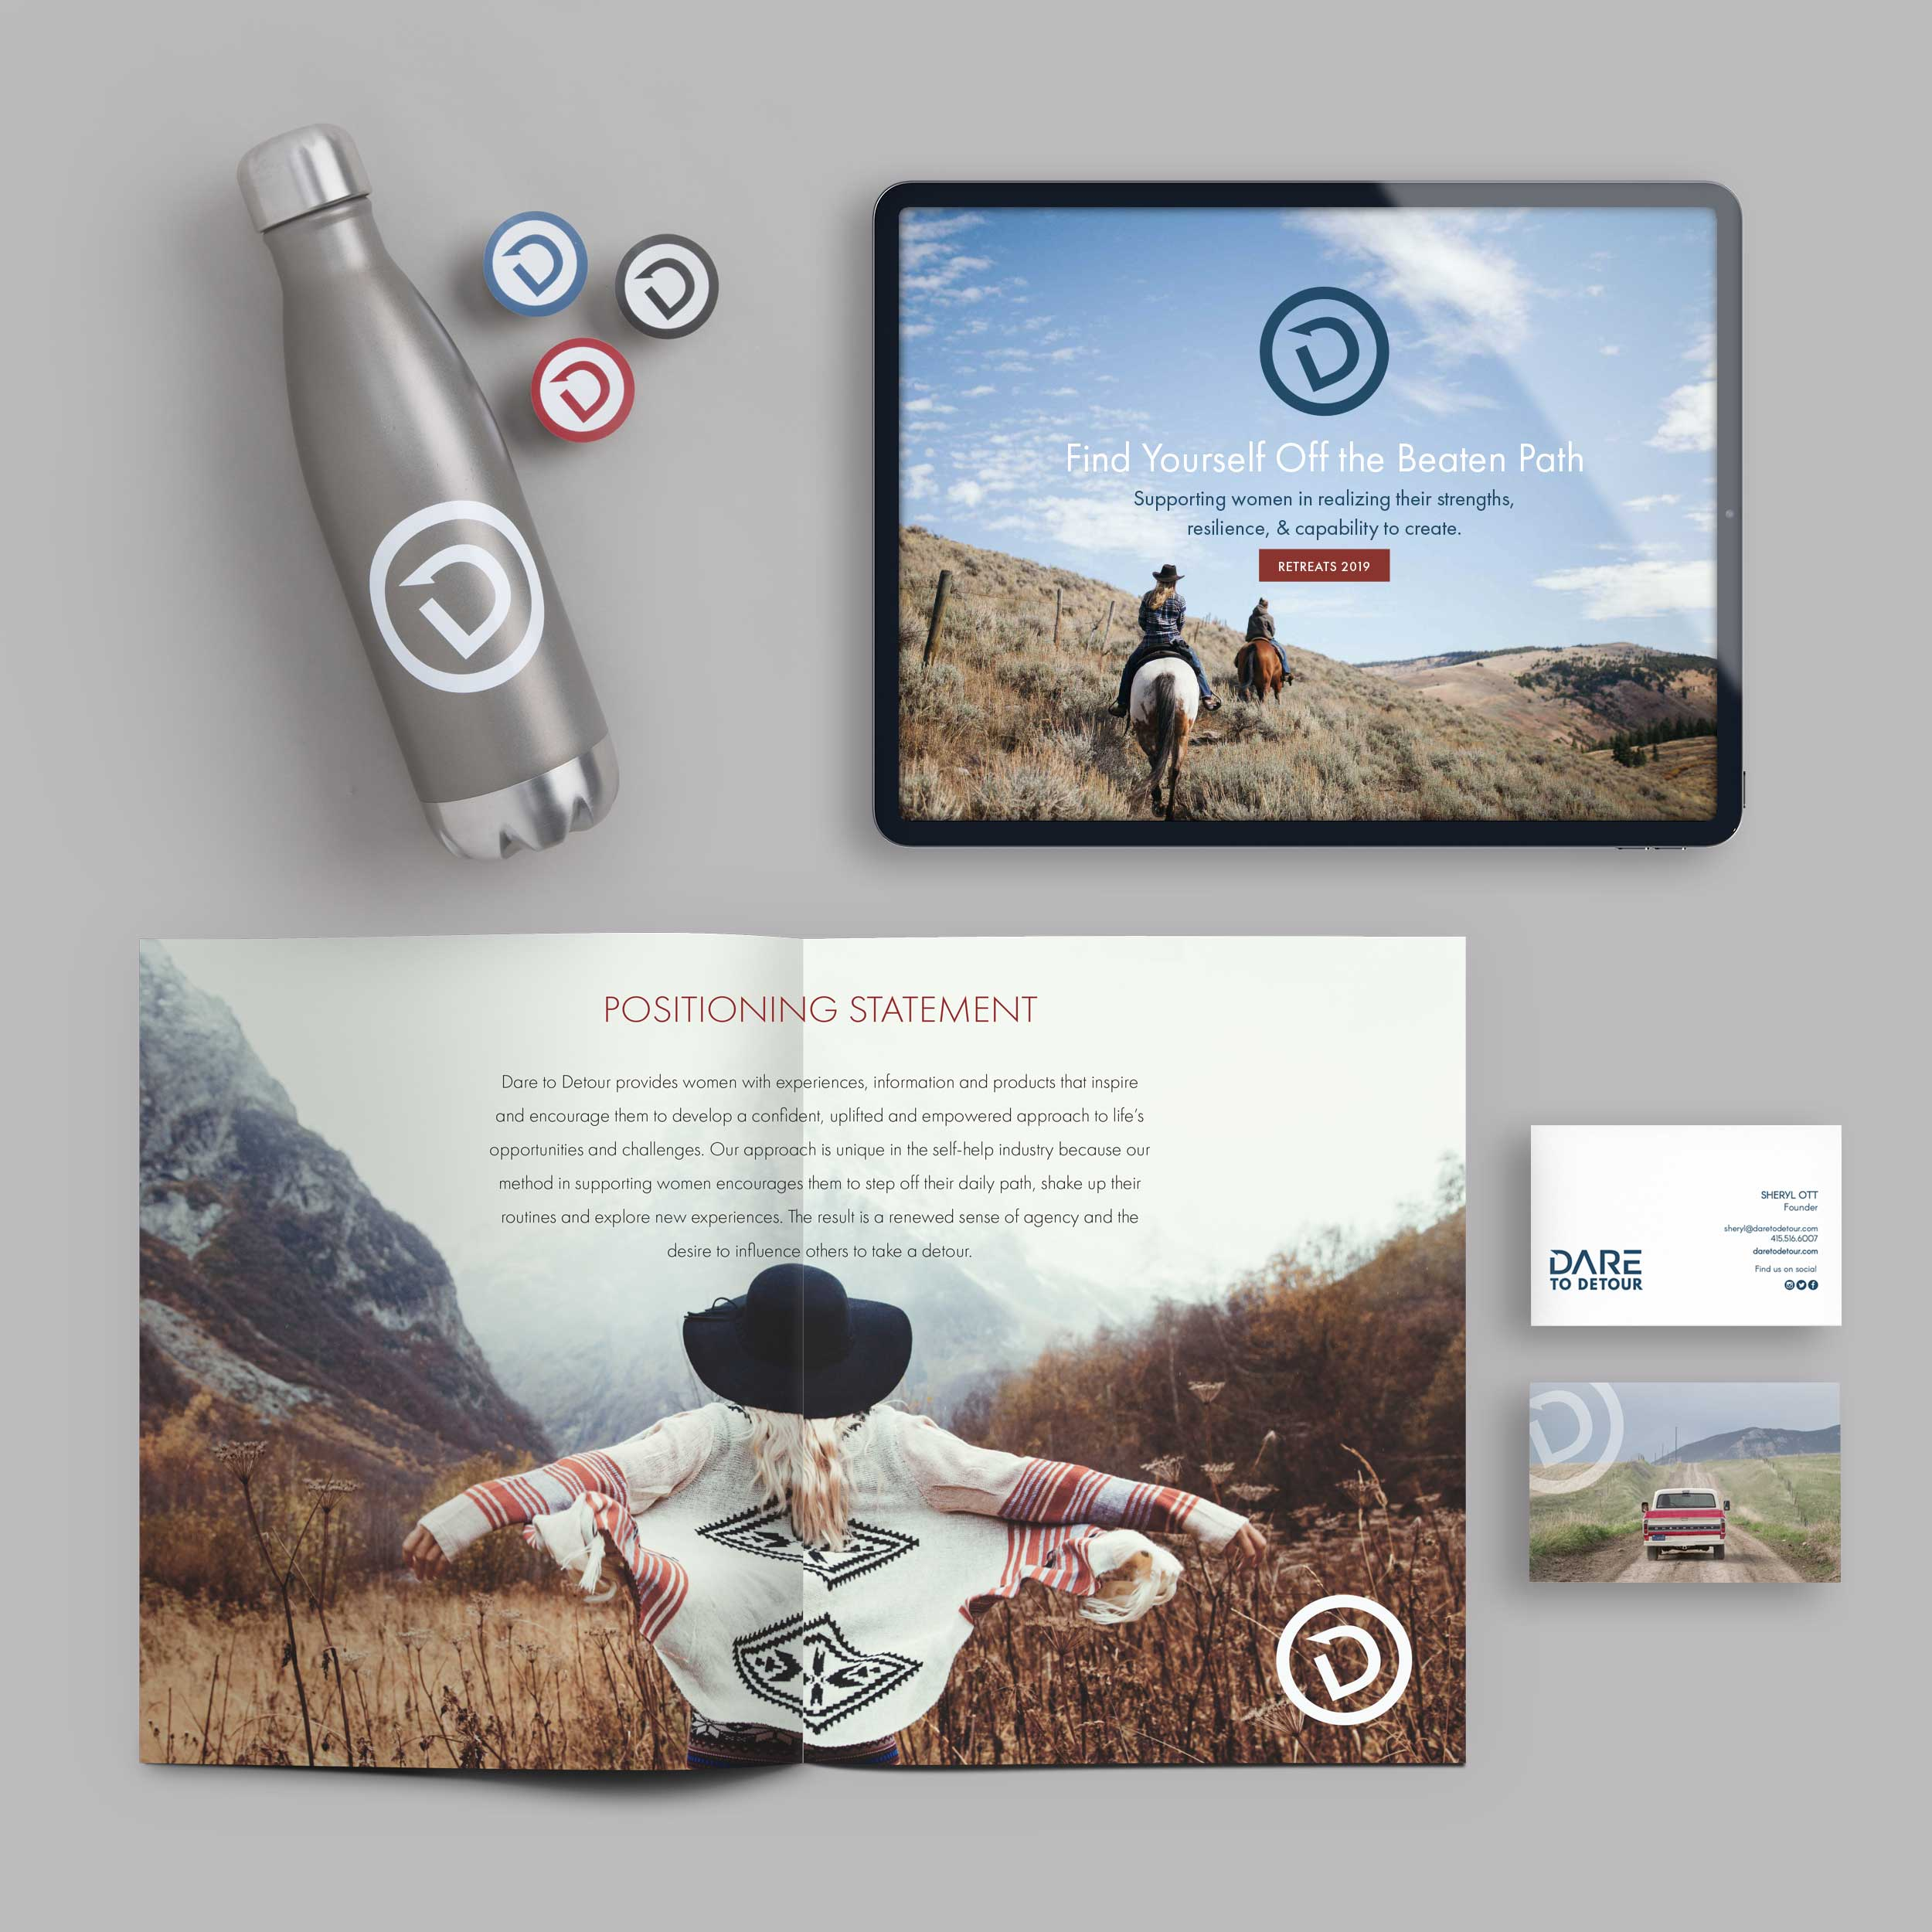 The Brand Builder Package - In this package you get great results for a great value. We take a look at your business holistically & create a visual story to propel your brand forward. It's a deeper dive into your brand strategy resulting in a sophisticated brand identity. One that will take your business to the next level.